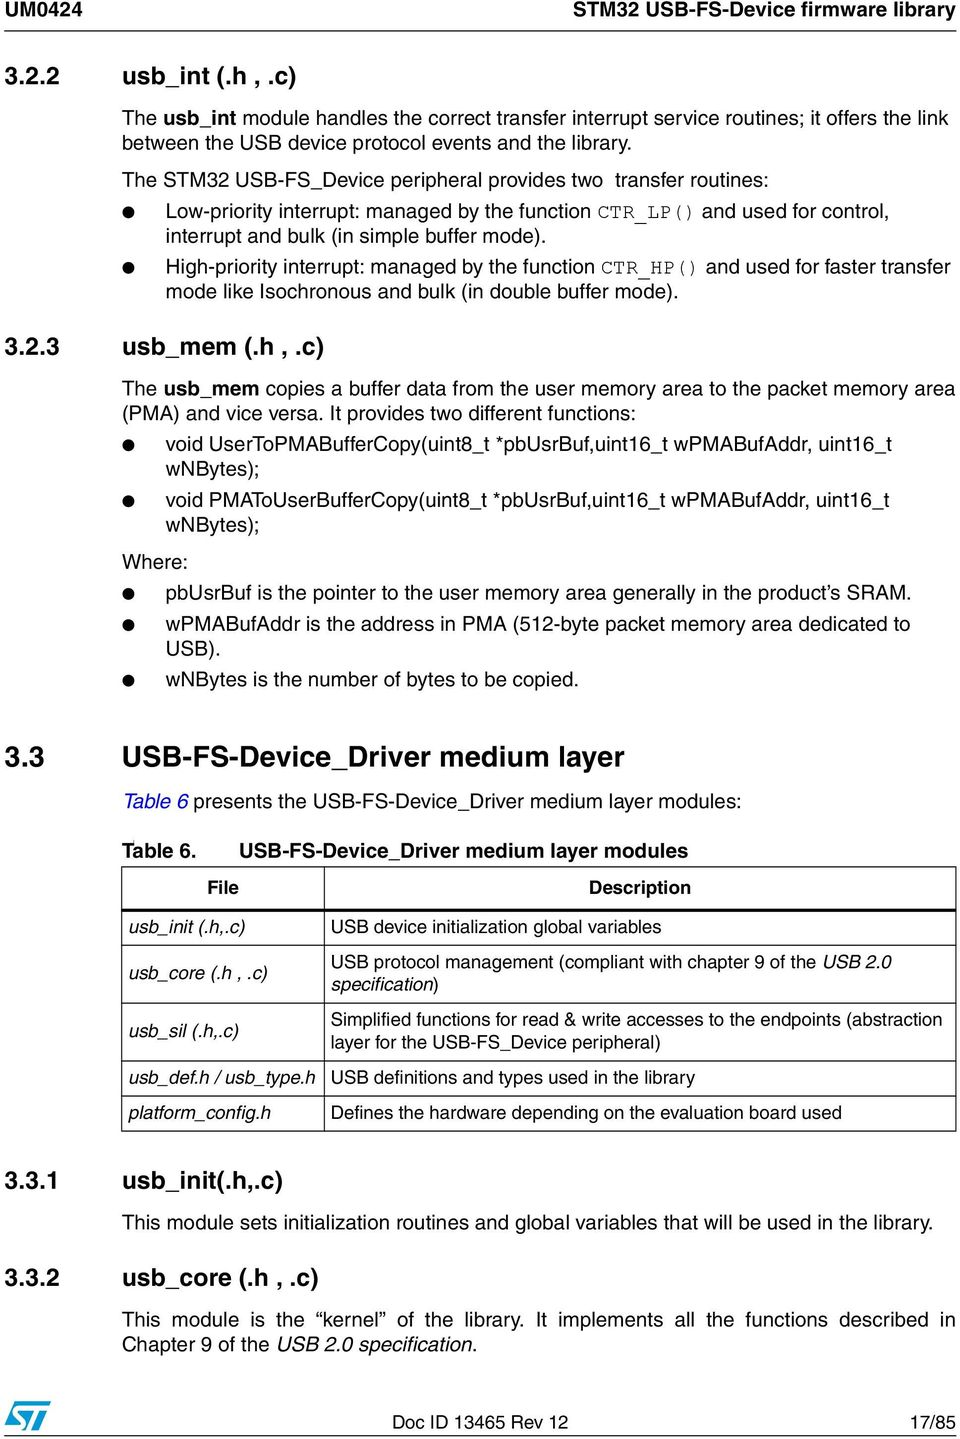 STM32F102xx and STM32F103xx series Microcontrollers - PDF